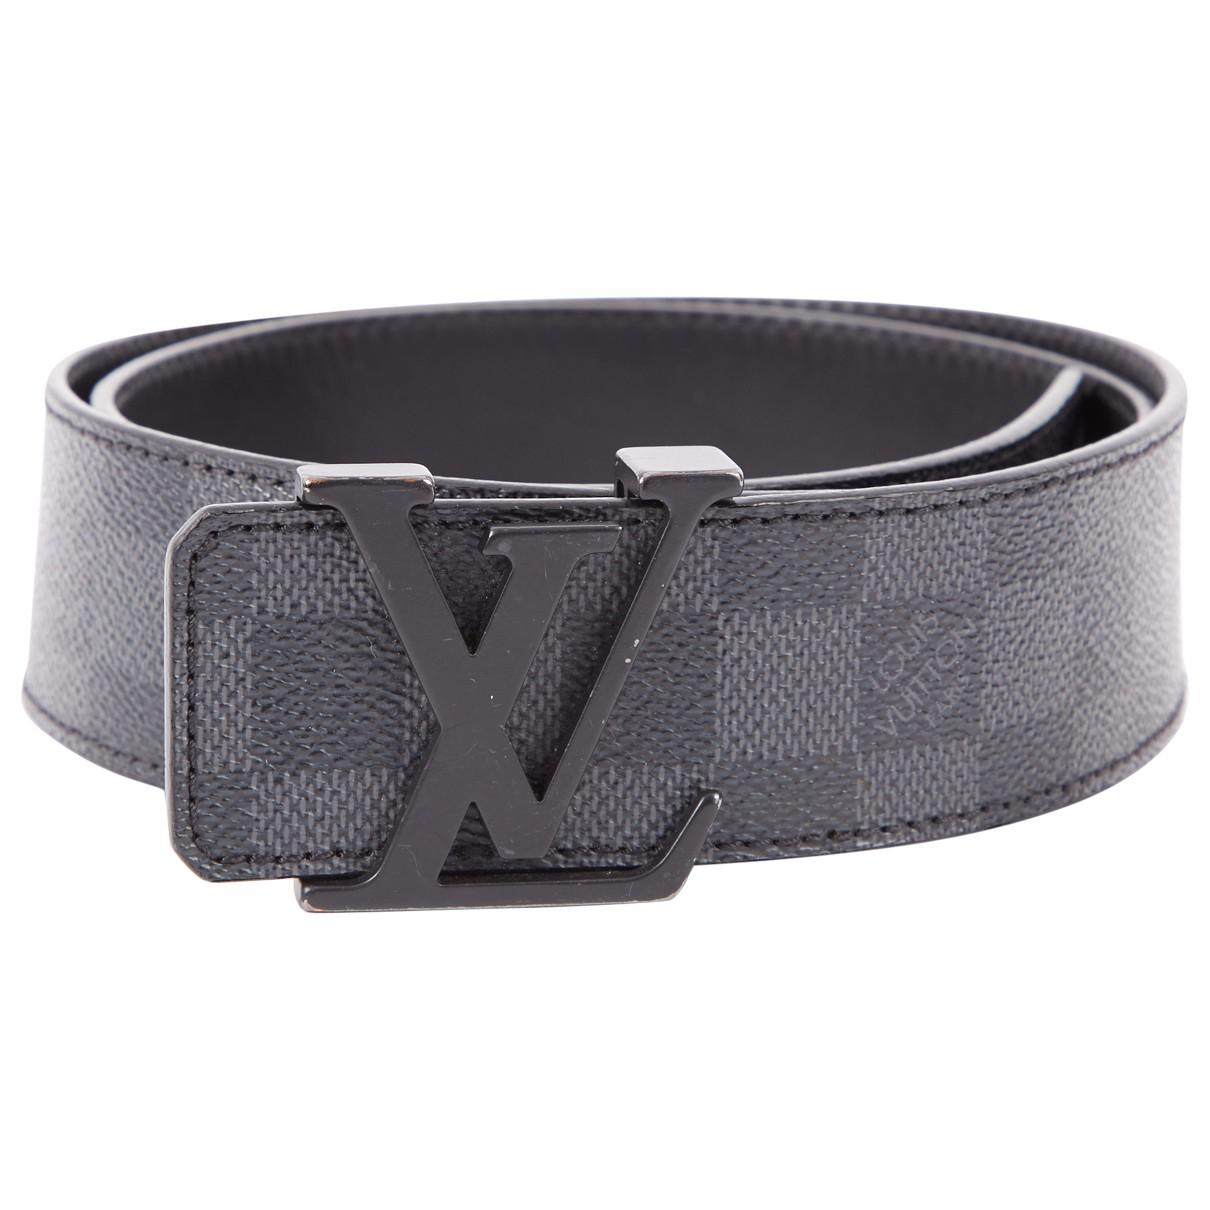 82a32bf6d82c Lyst - Louis Vuitton Pre-owned Leather Belt in Black for Men